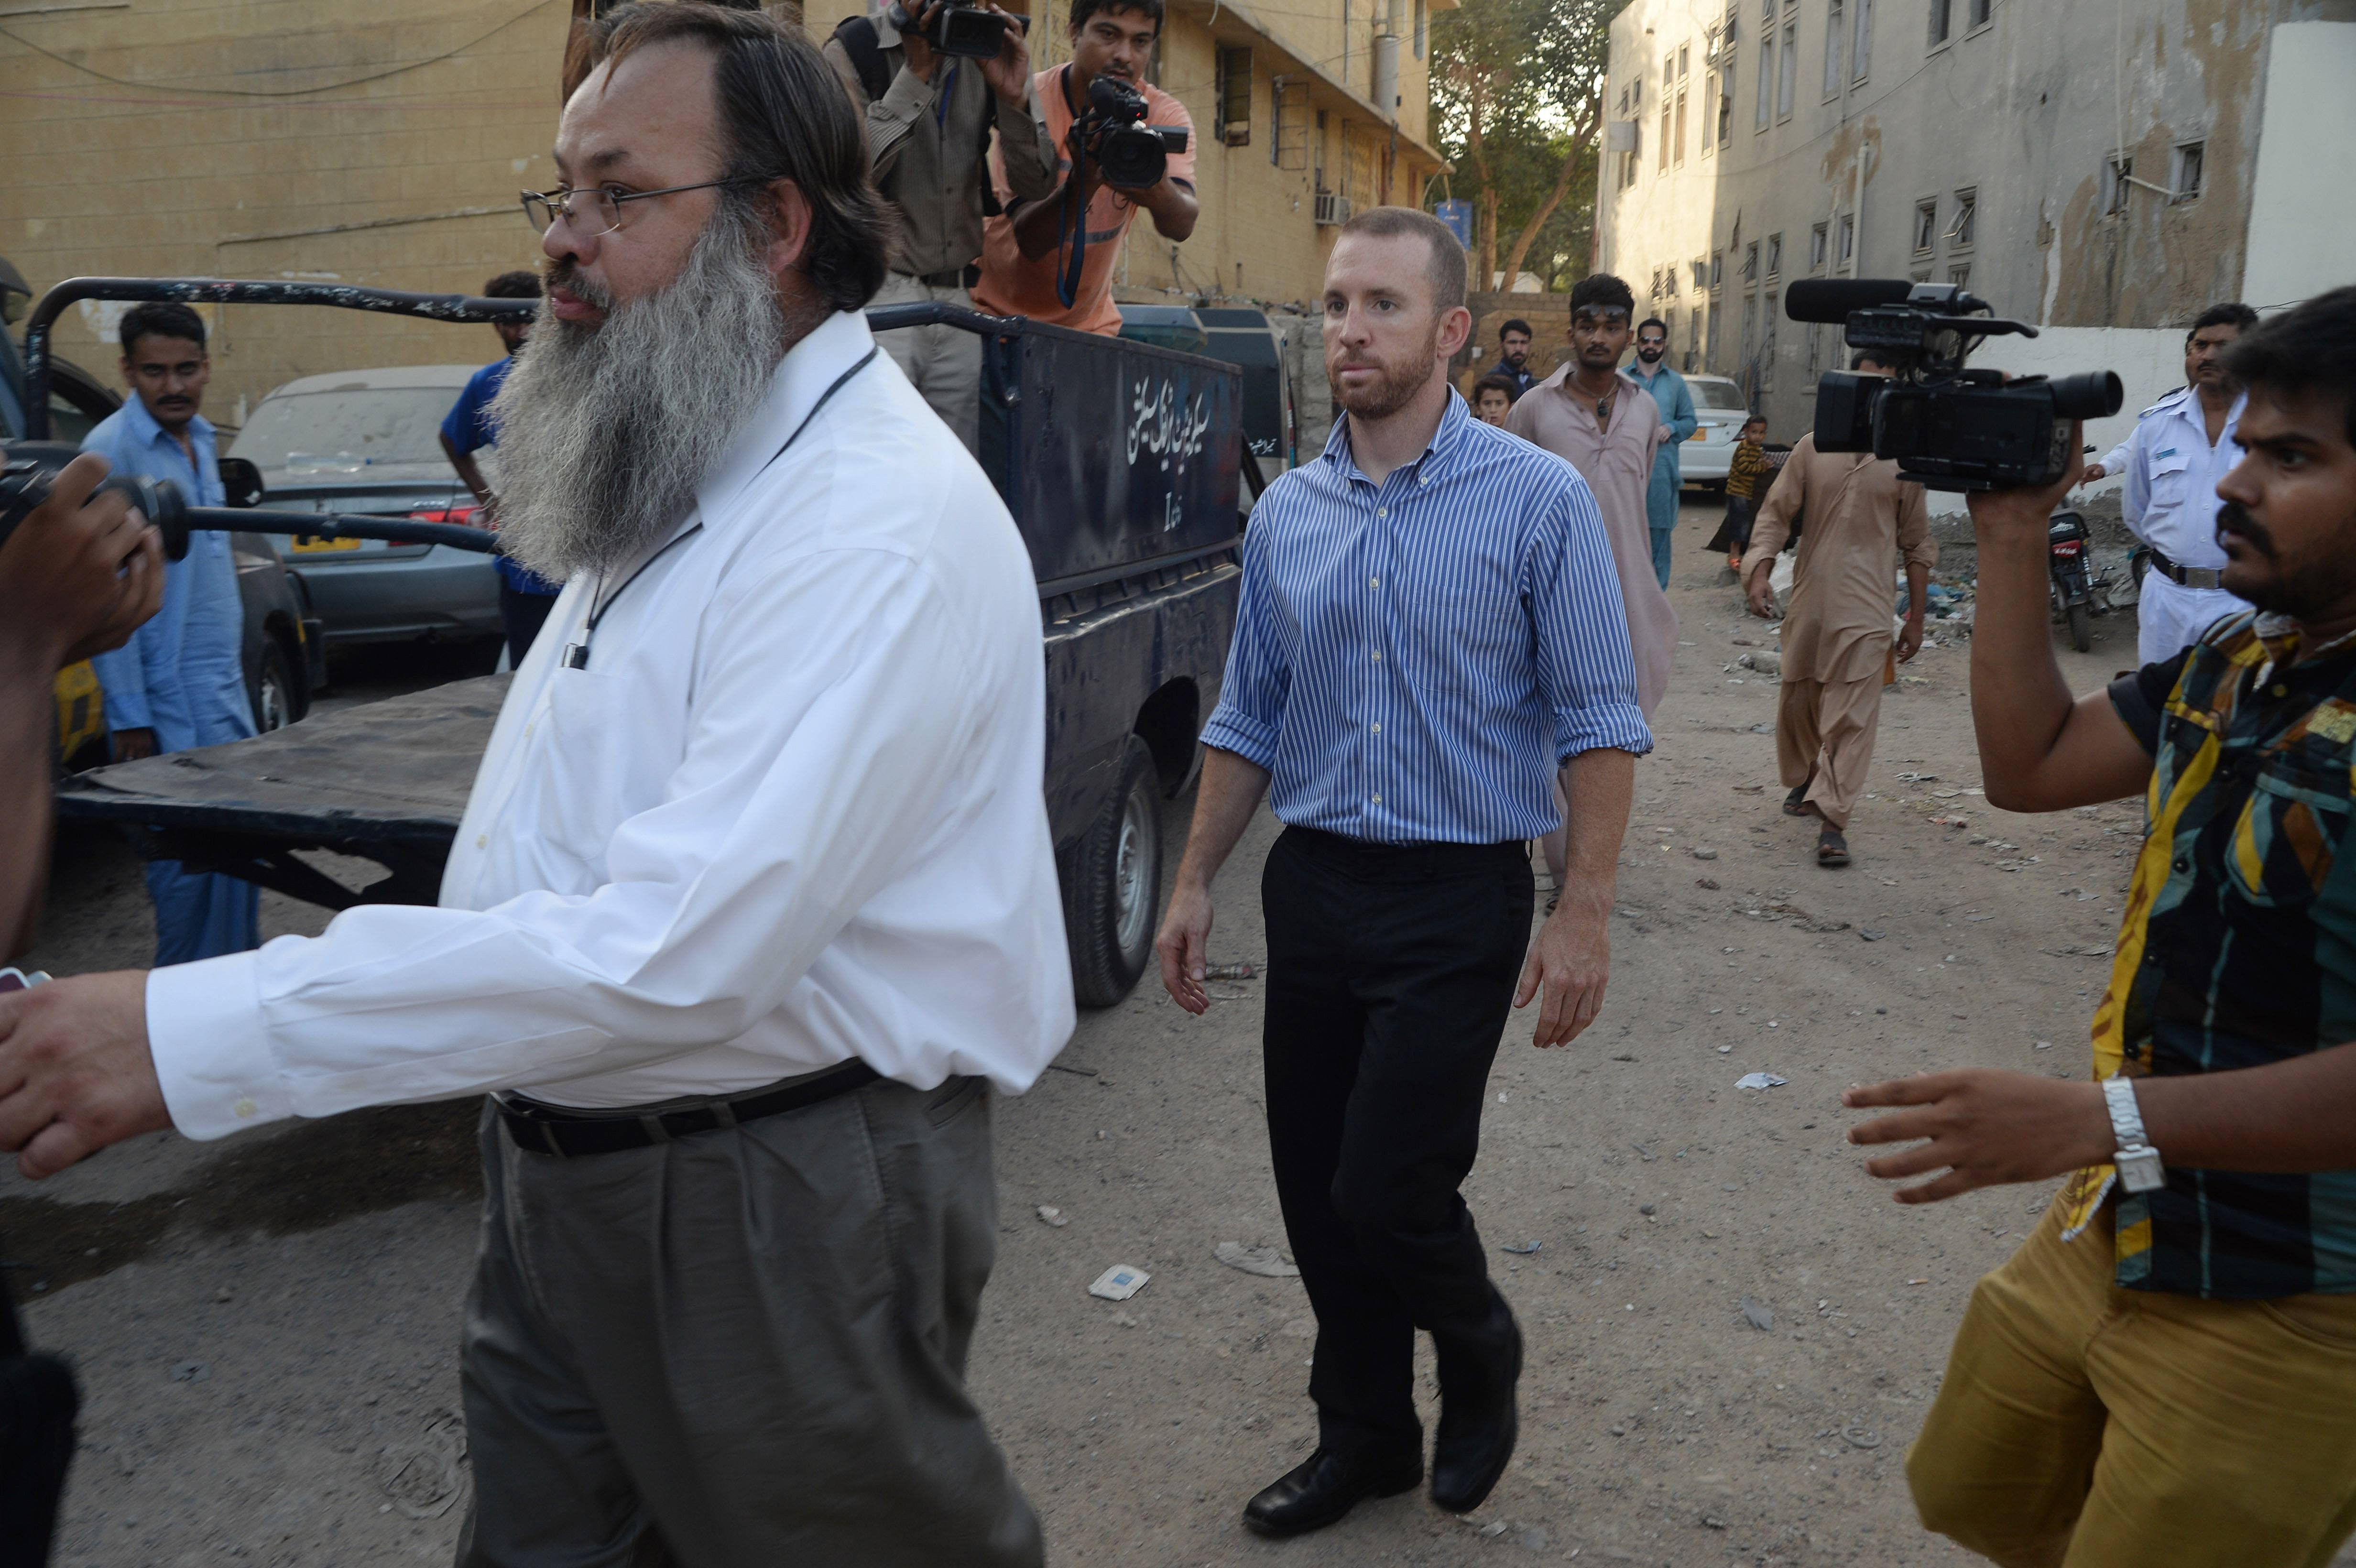 An American national, center, reportedly working for the FBI, leaves a police station in Karachi, Pakistan, Thursday, May 8. Pakistan released an FBI agent on bail Thursday after three days in custody, officials said, a move that is likely to prevent the situation from escalating into a diplomatic spat. The American man was detained after airport authorities found him carrying ammunition and three knives Monday as he was about to board a flight for the Pakistani capital, Islamabad.